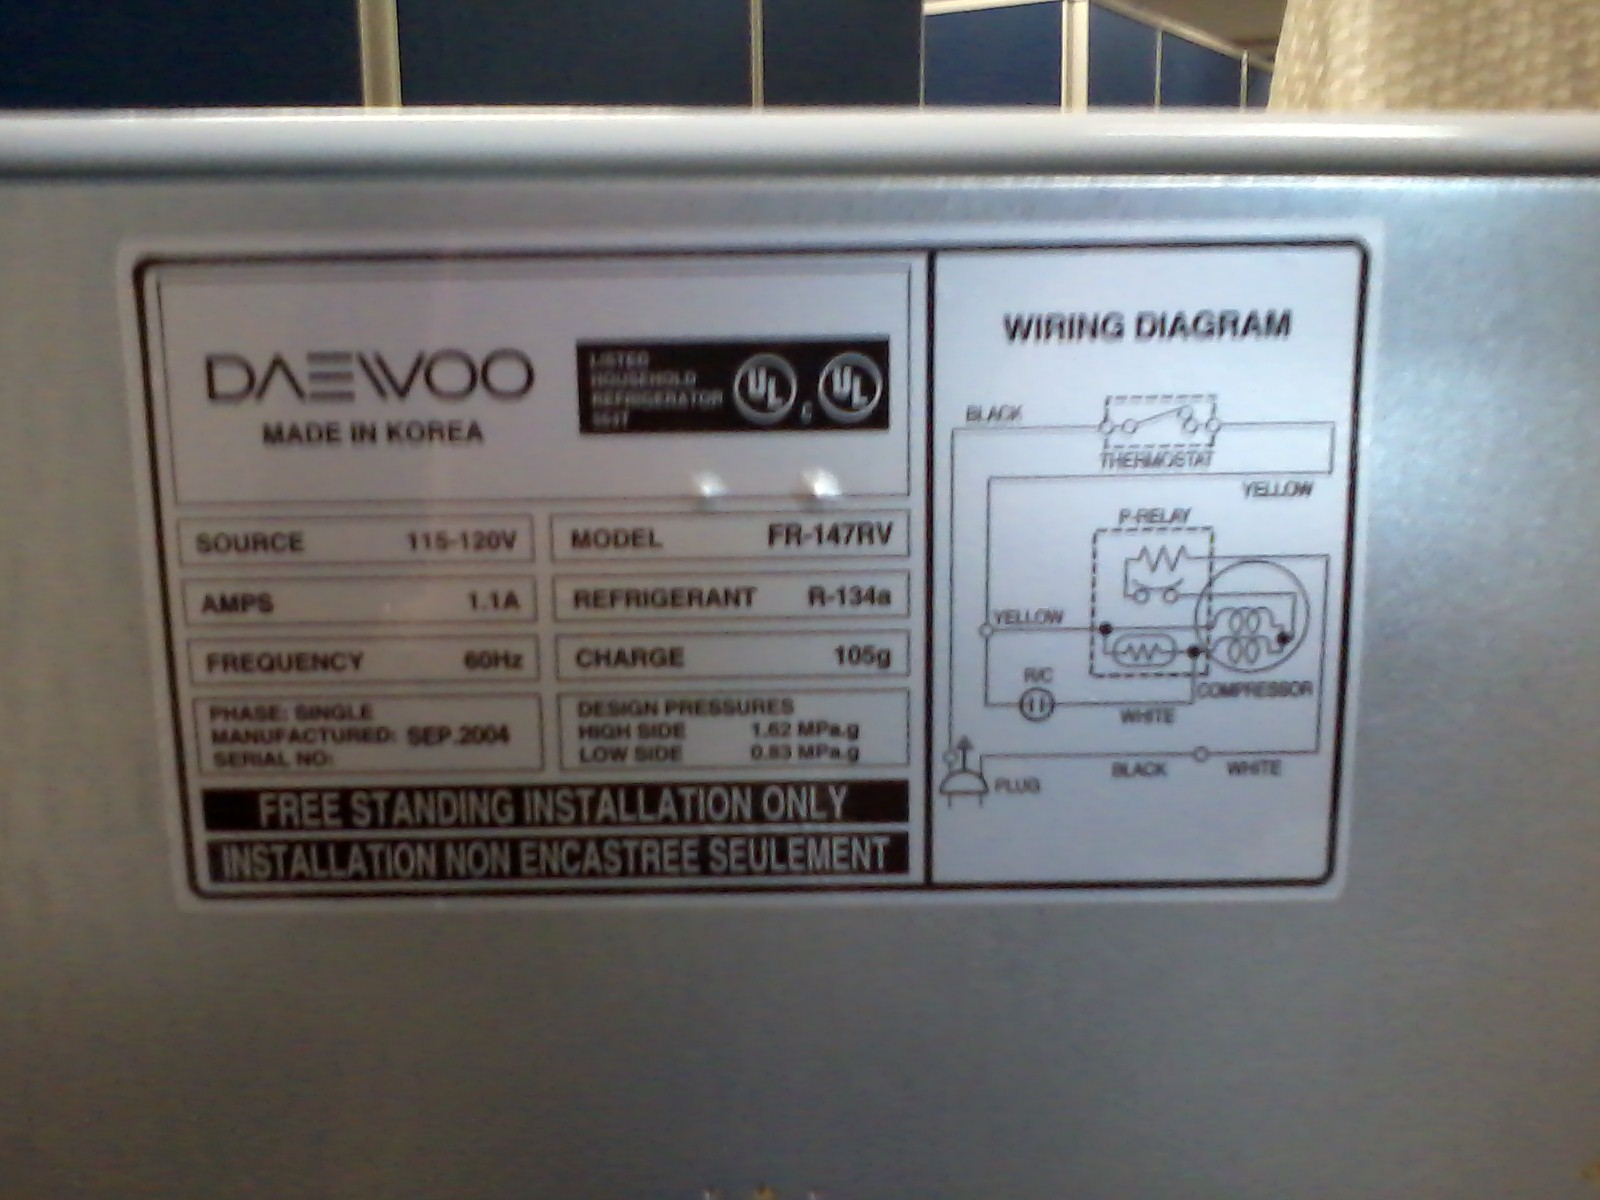 hight resolution of file daewoo electronics refrigerator plate jpg